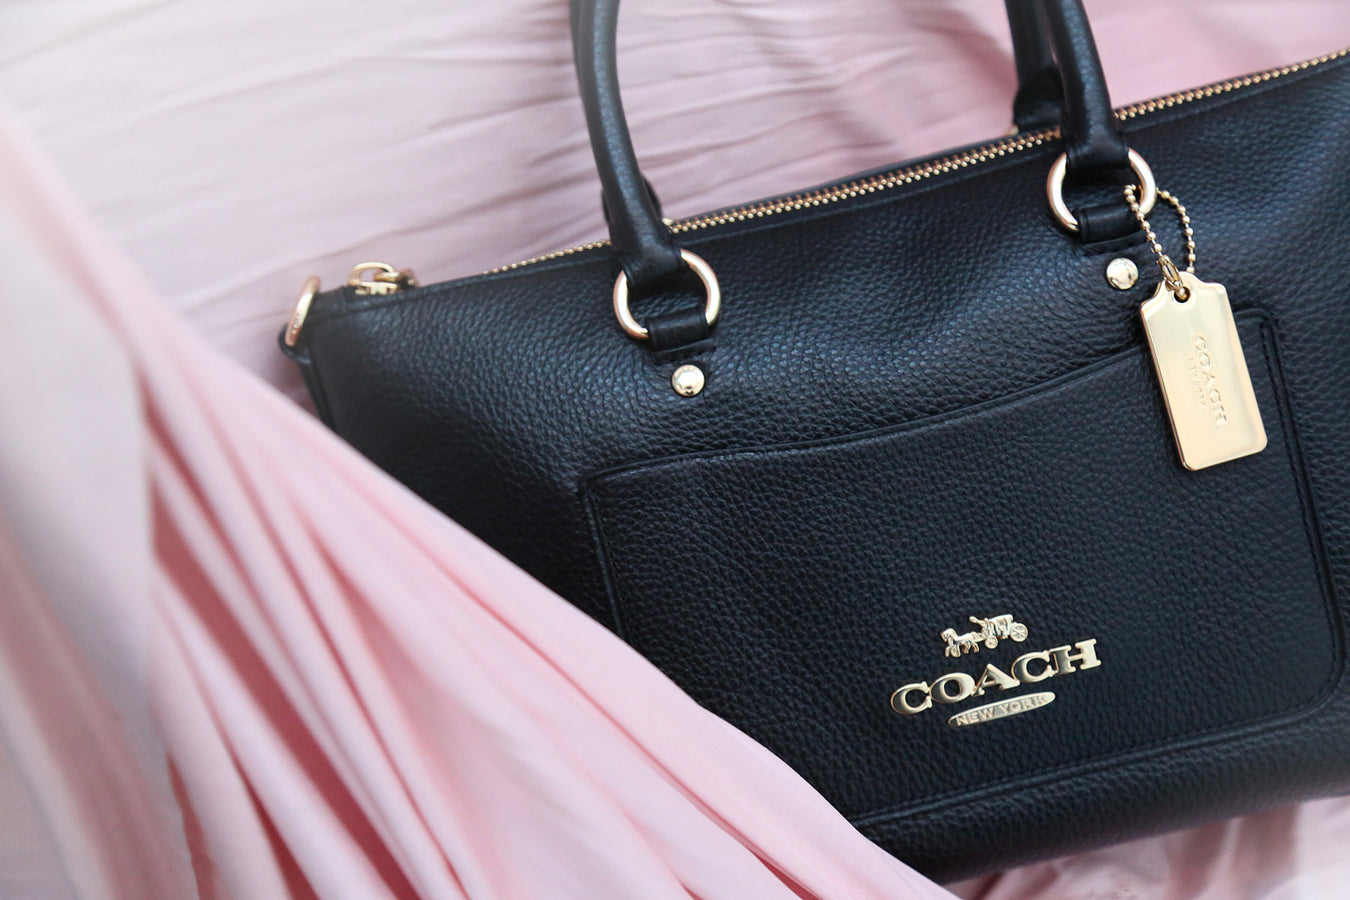 Coach leather handbag for women